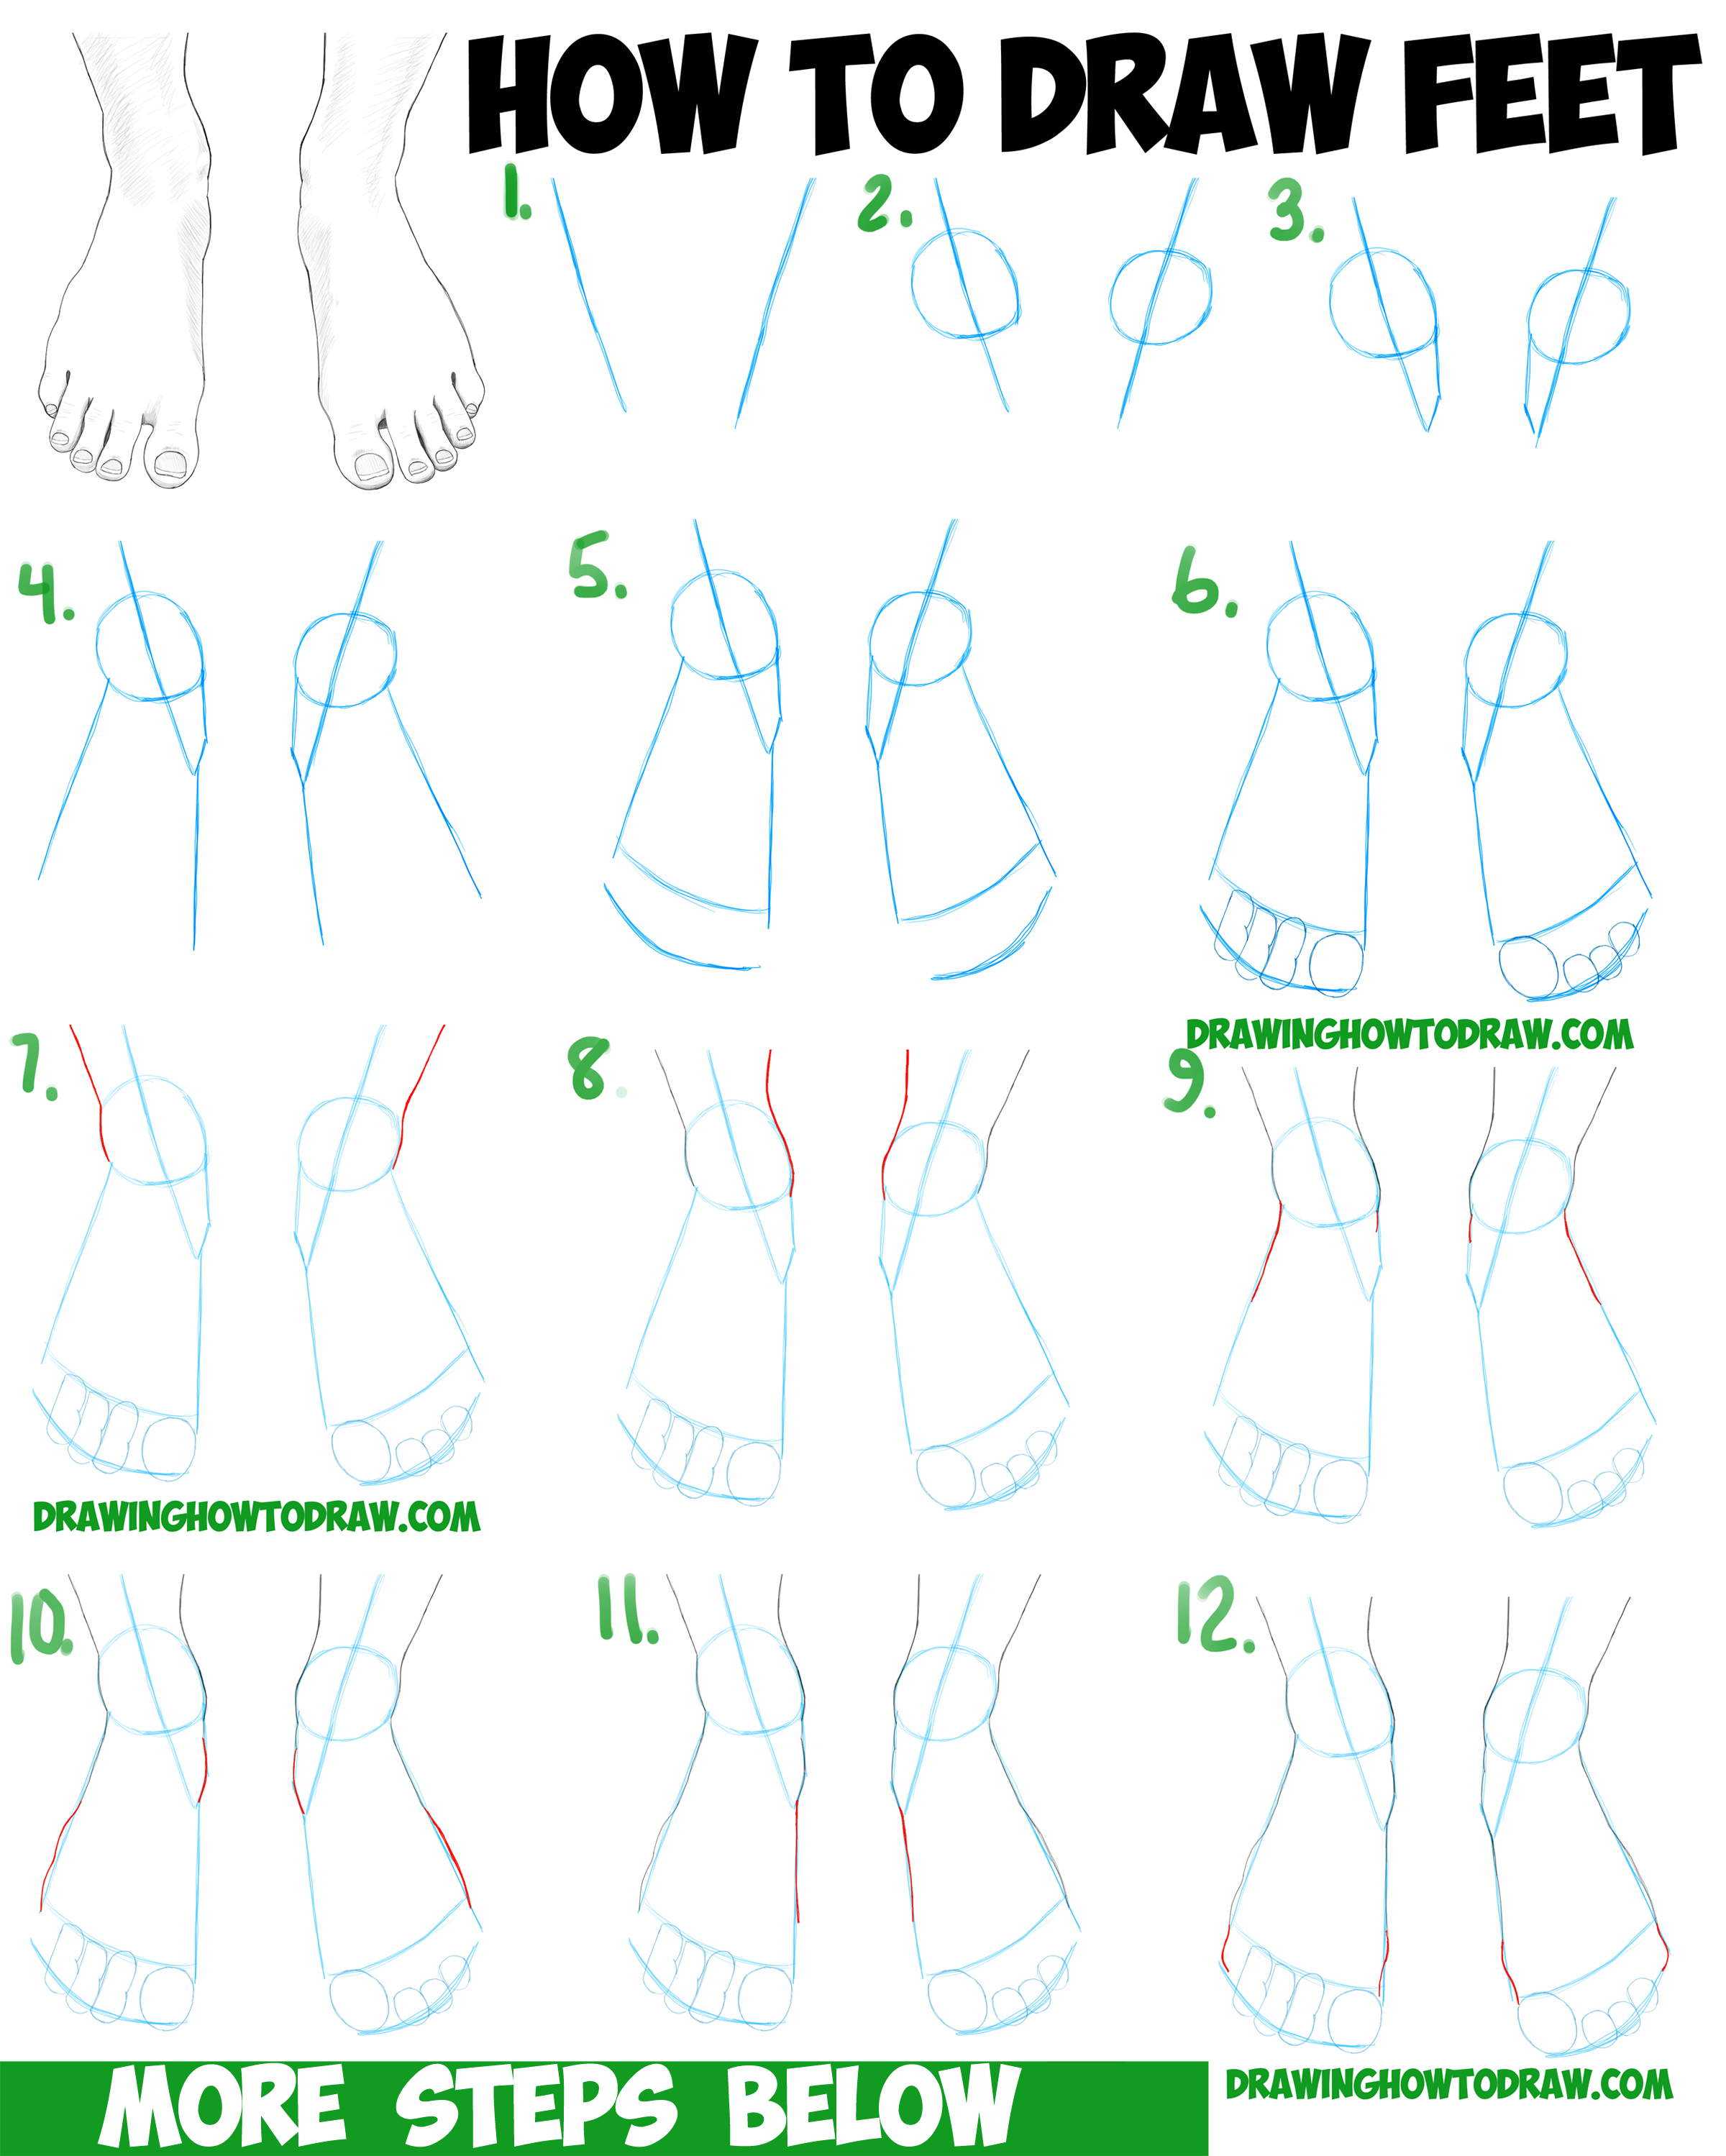 how to draw feet staning realistic foot easy step by step drawing tutorial for beginners how to draw feet the human foot with easy step by step drawing